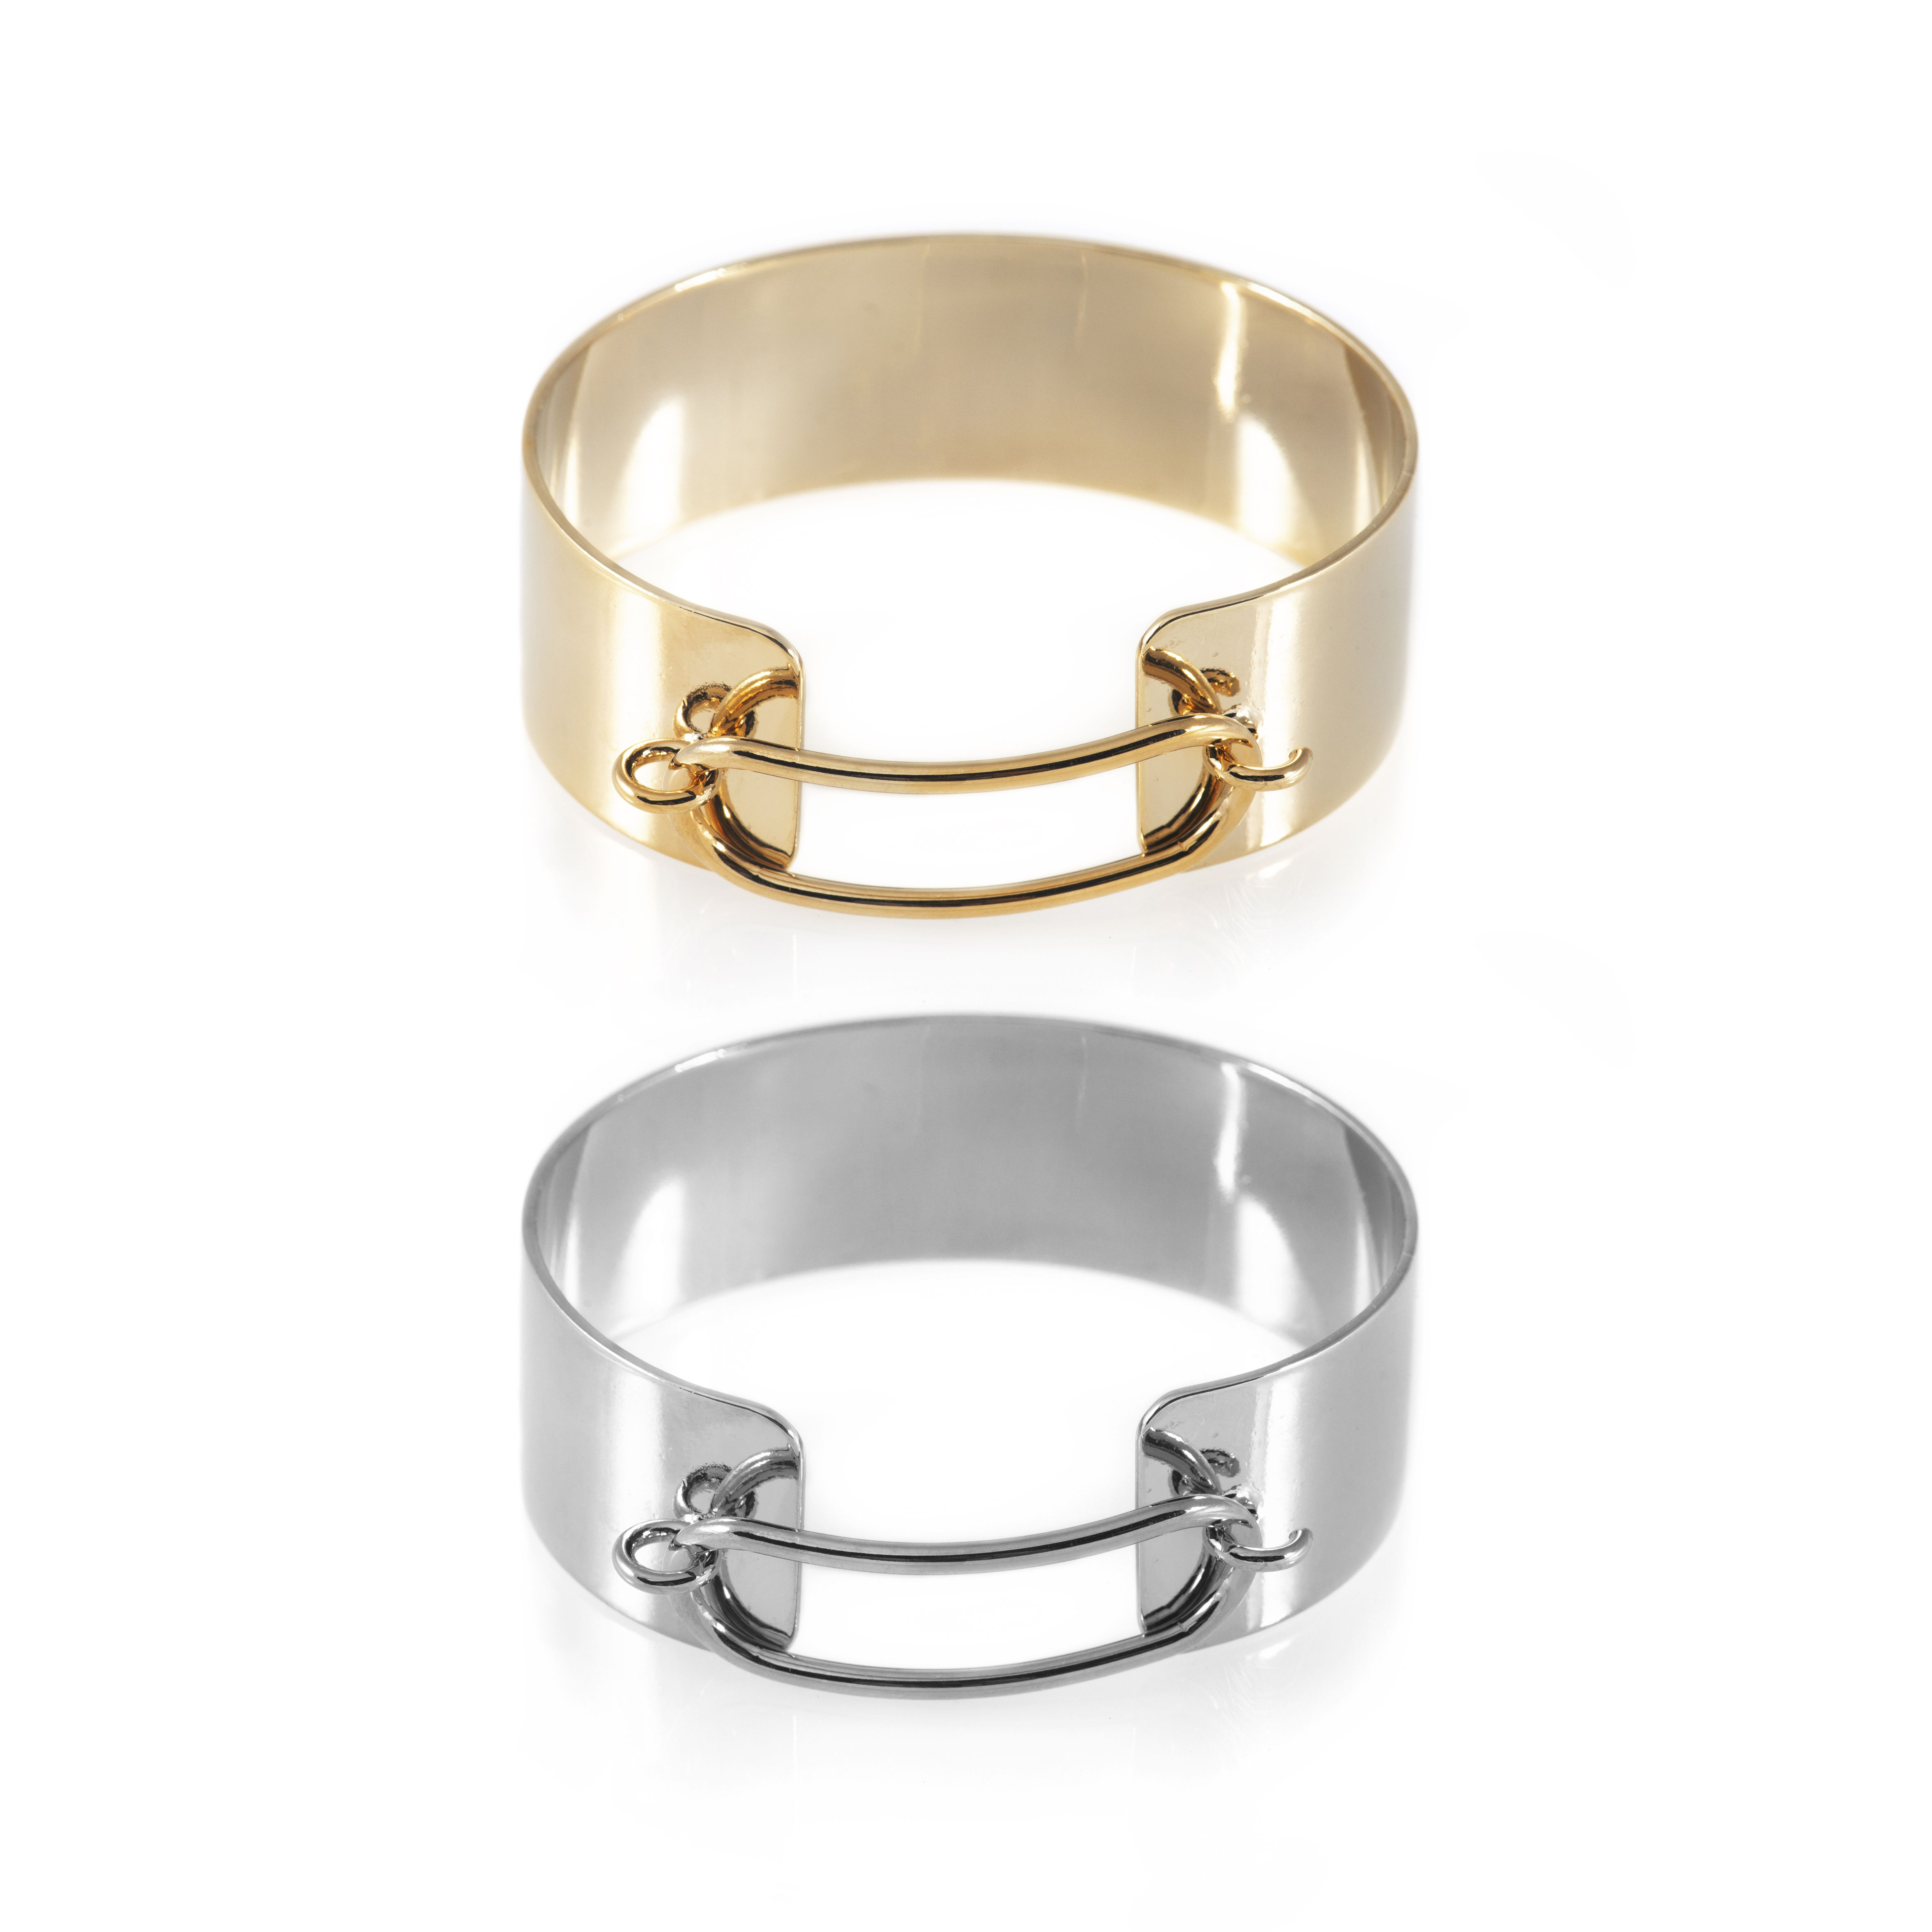 Up your jewel game with the Hook Cuff, which features 14K plating and fastens…